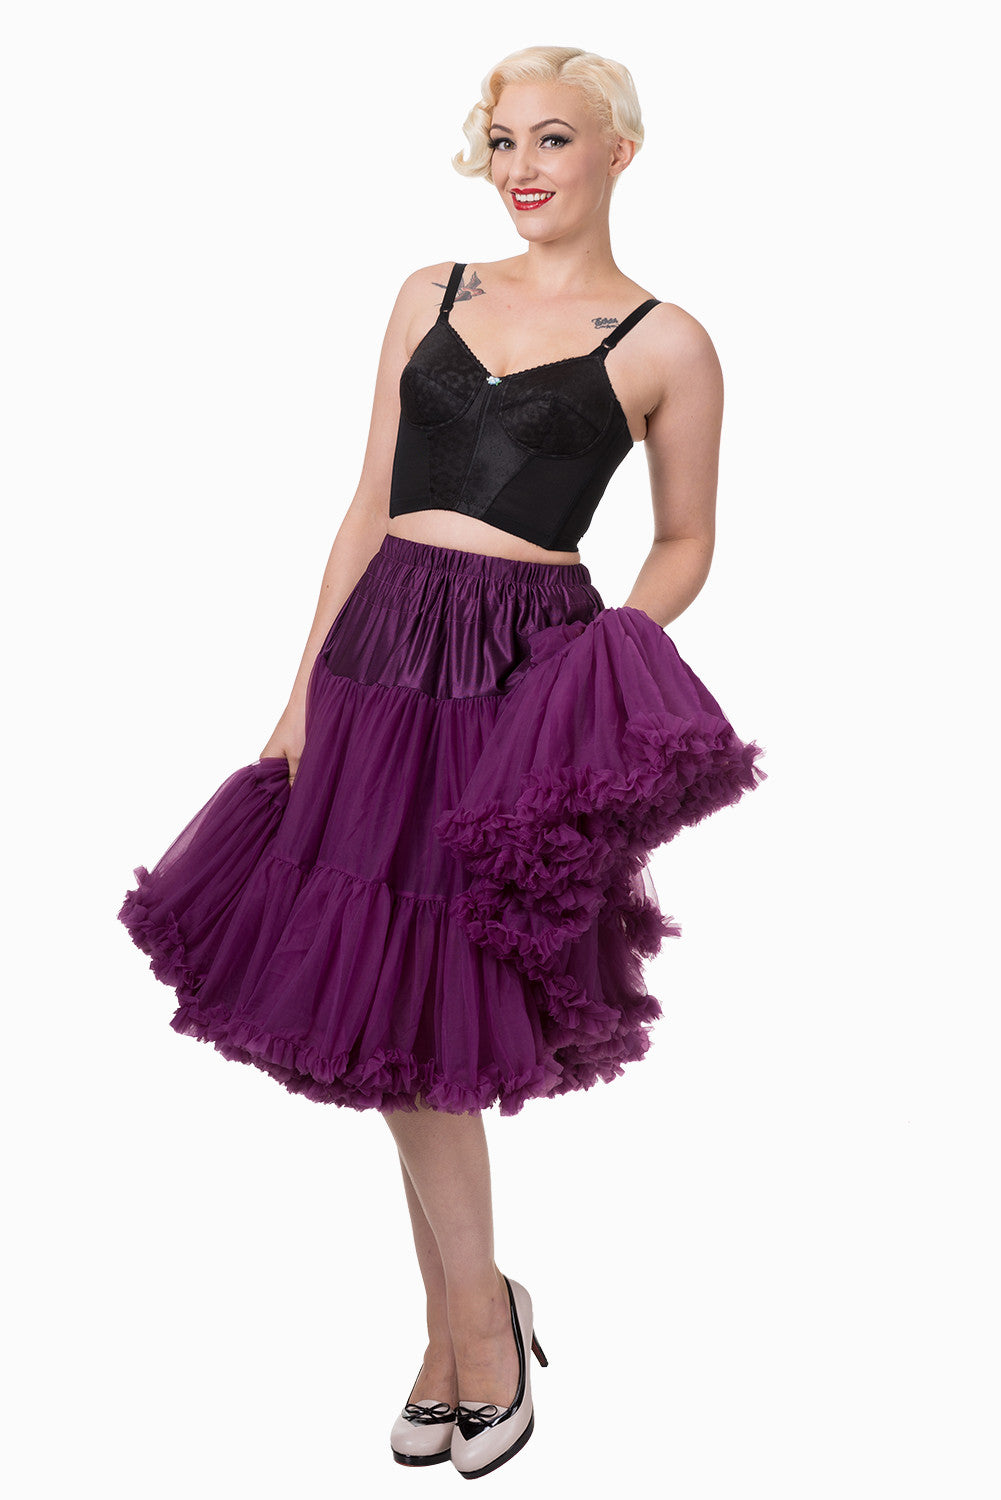 Lifeforms Petticoat in Aubergine